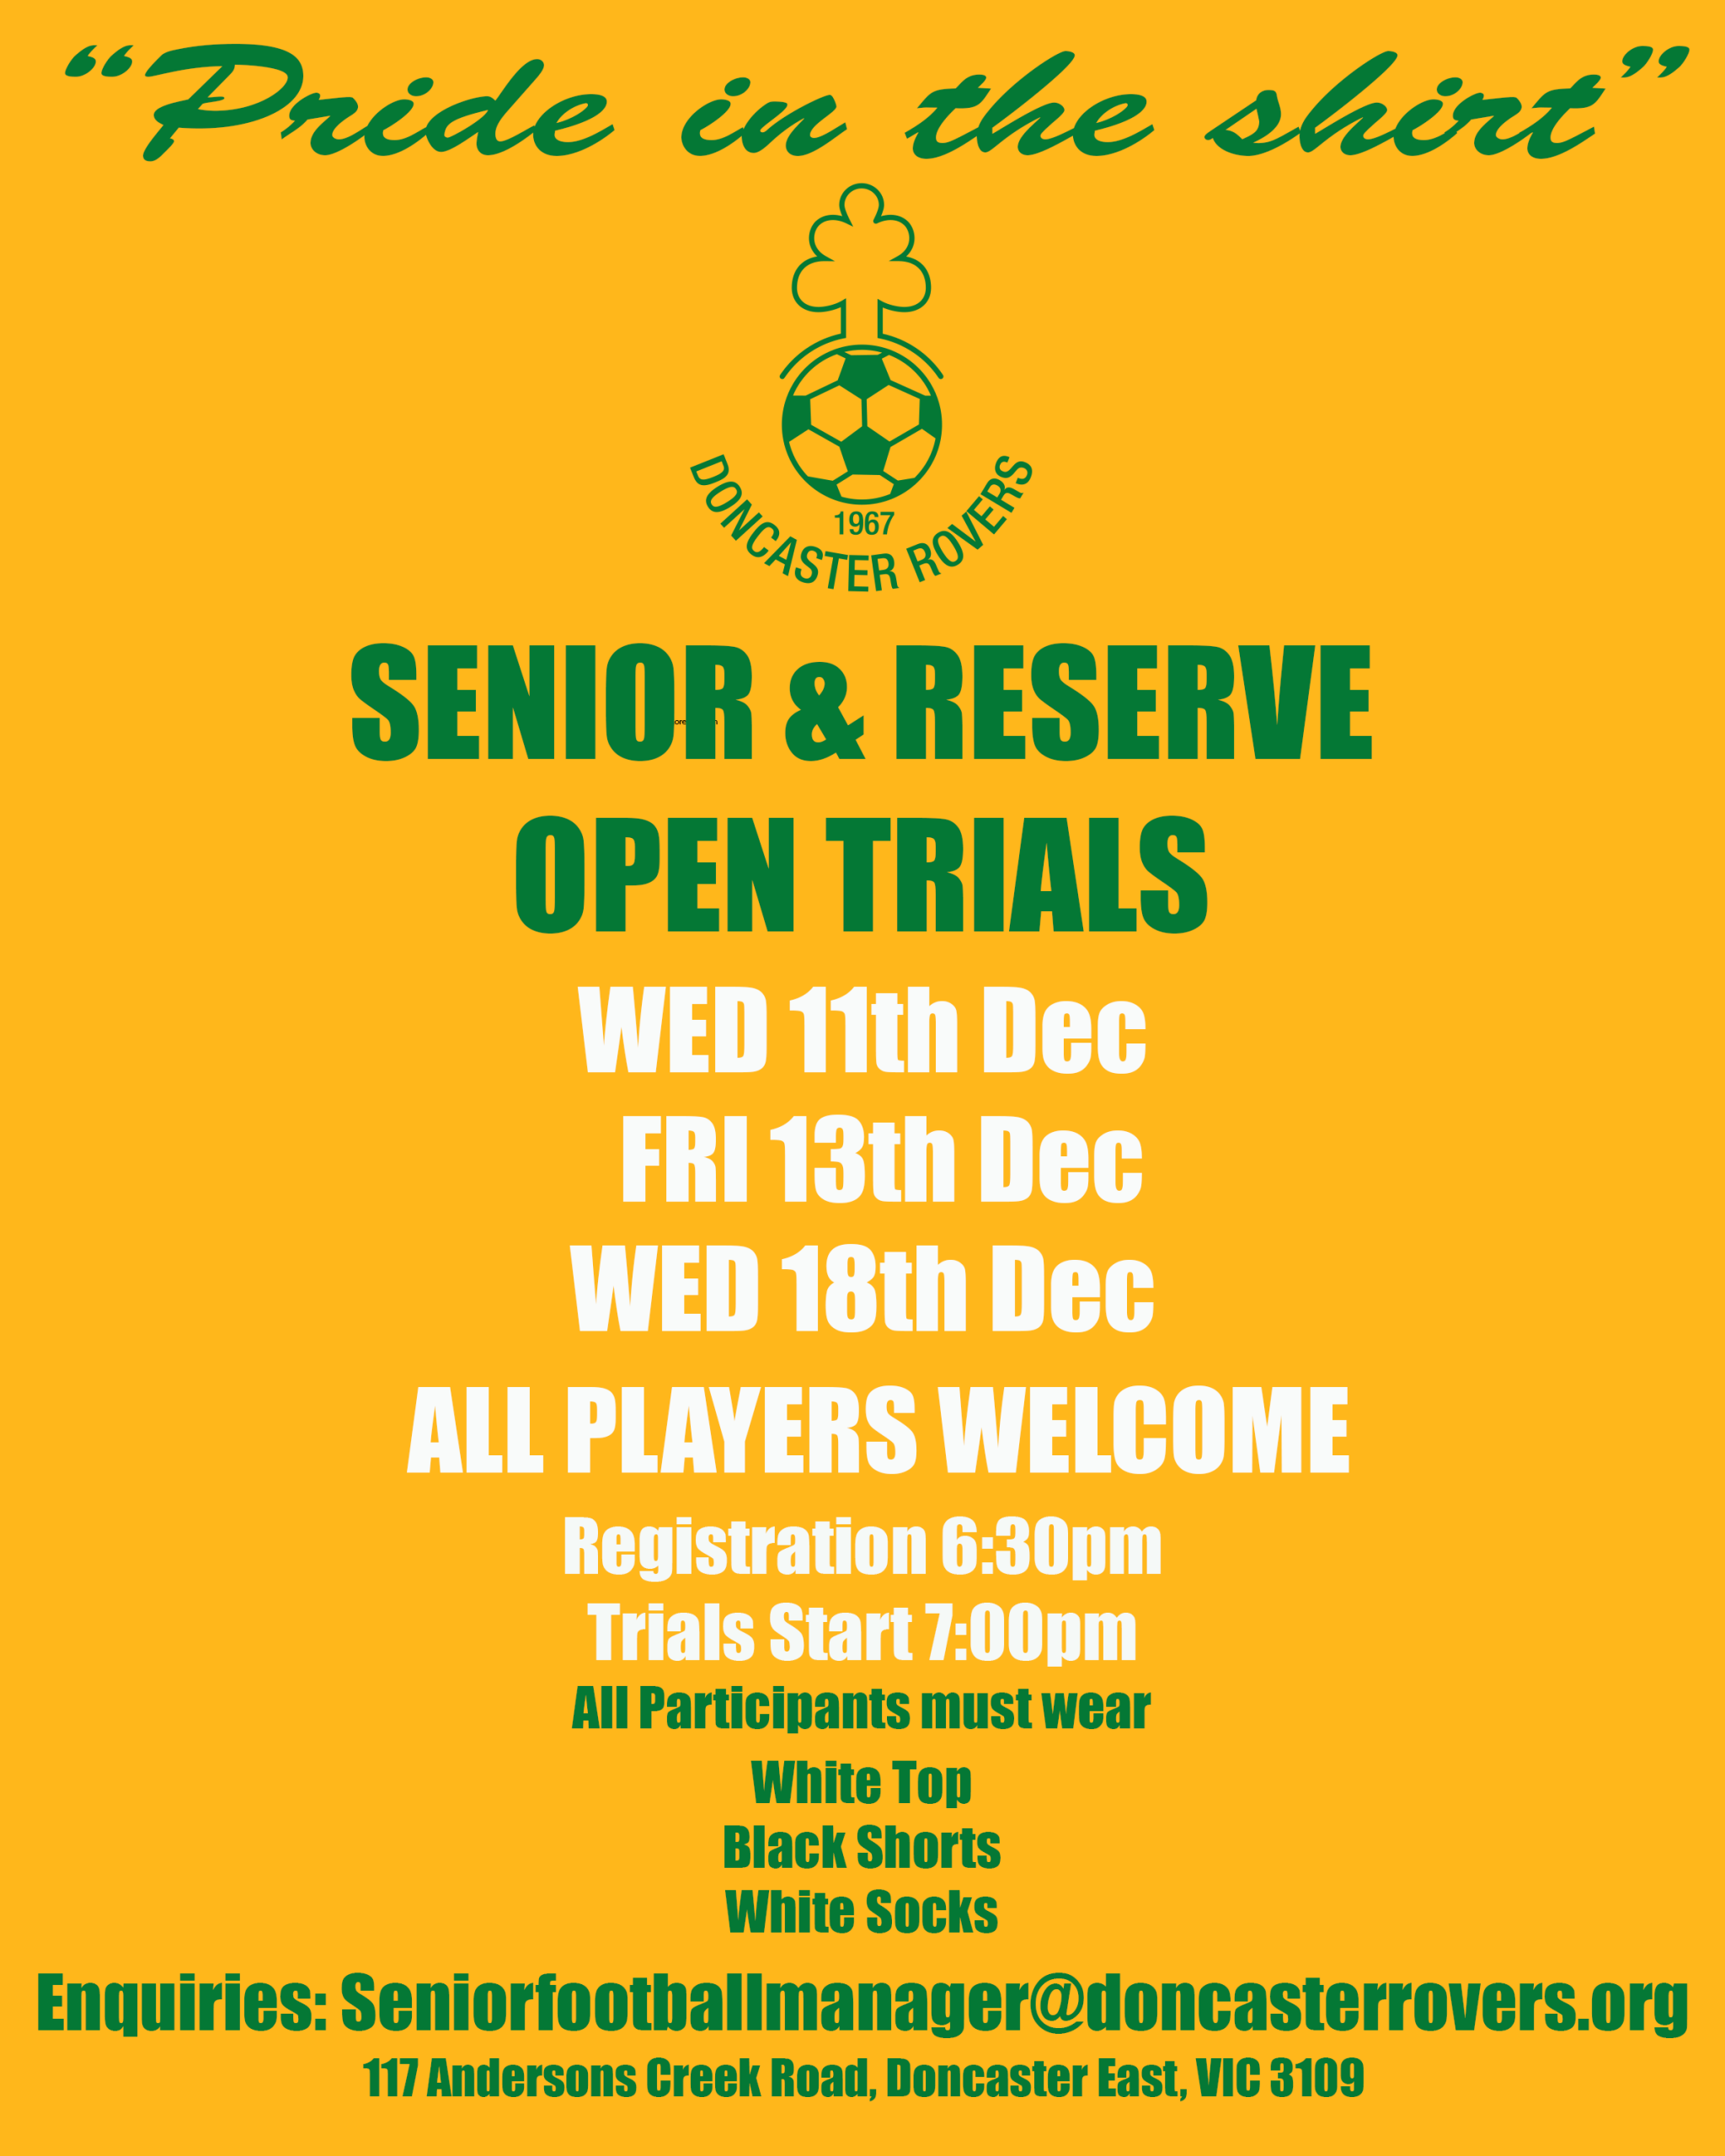 Senior & Reserve Trials